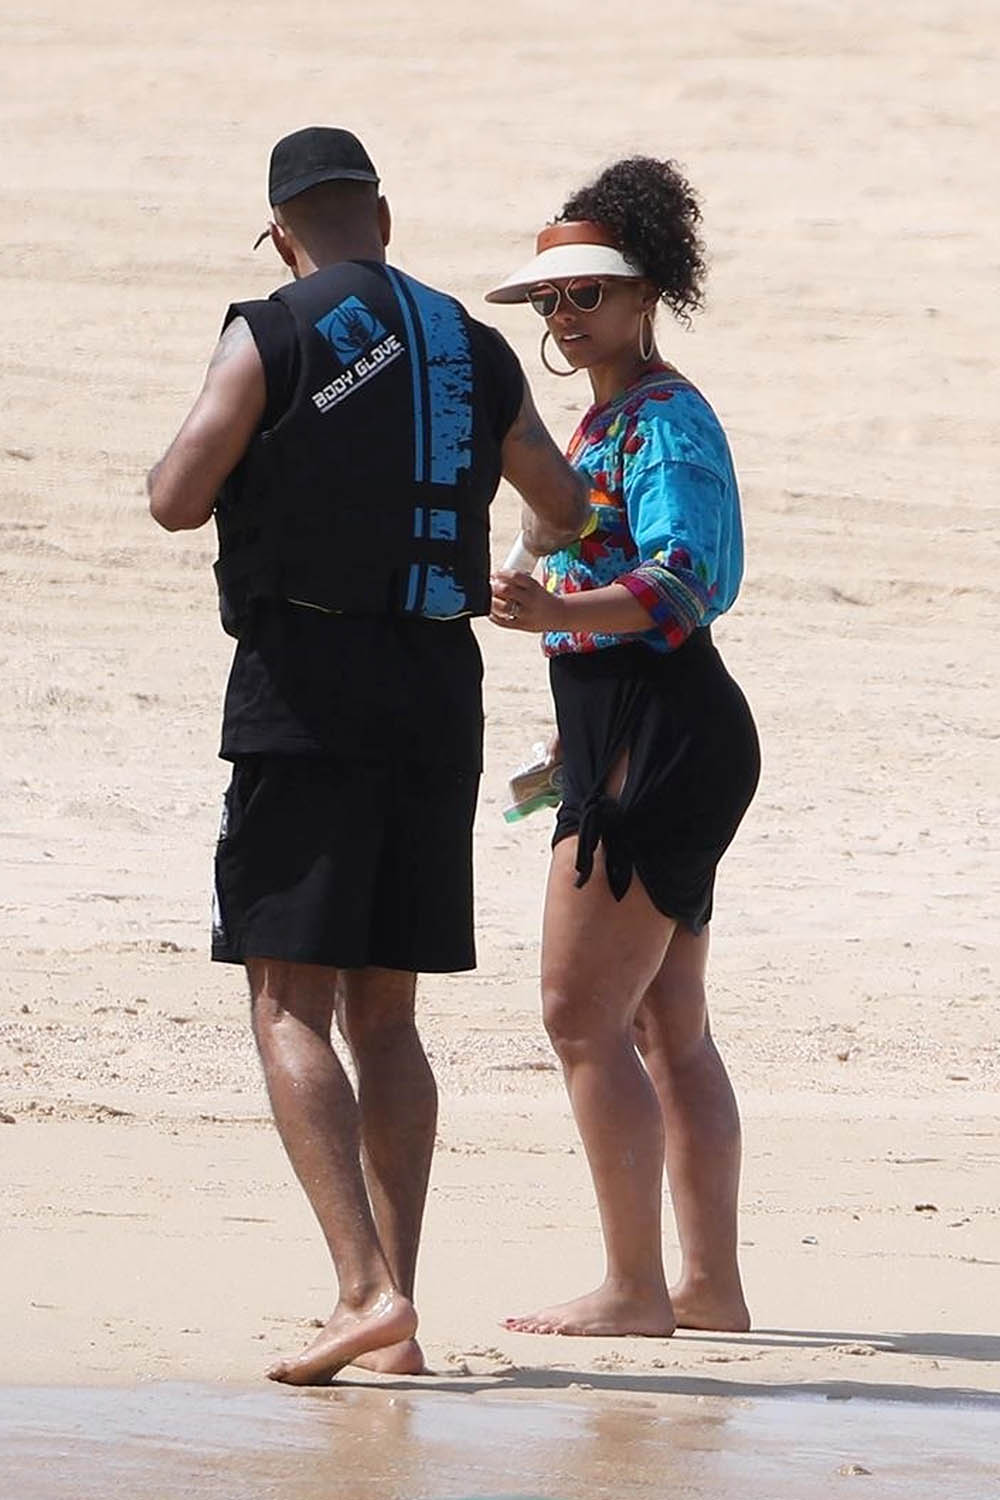 Alicia Keys Amp Swizz Beatz On Vacation In Cabo San Lucas